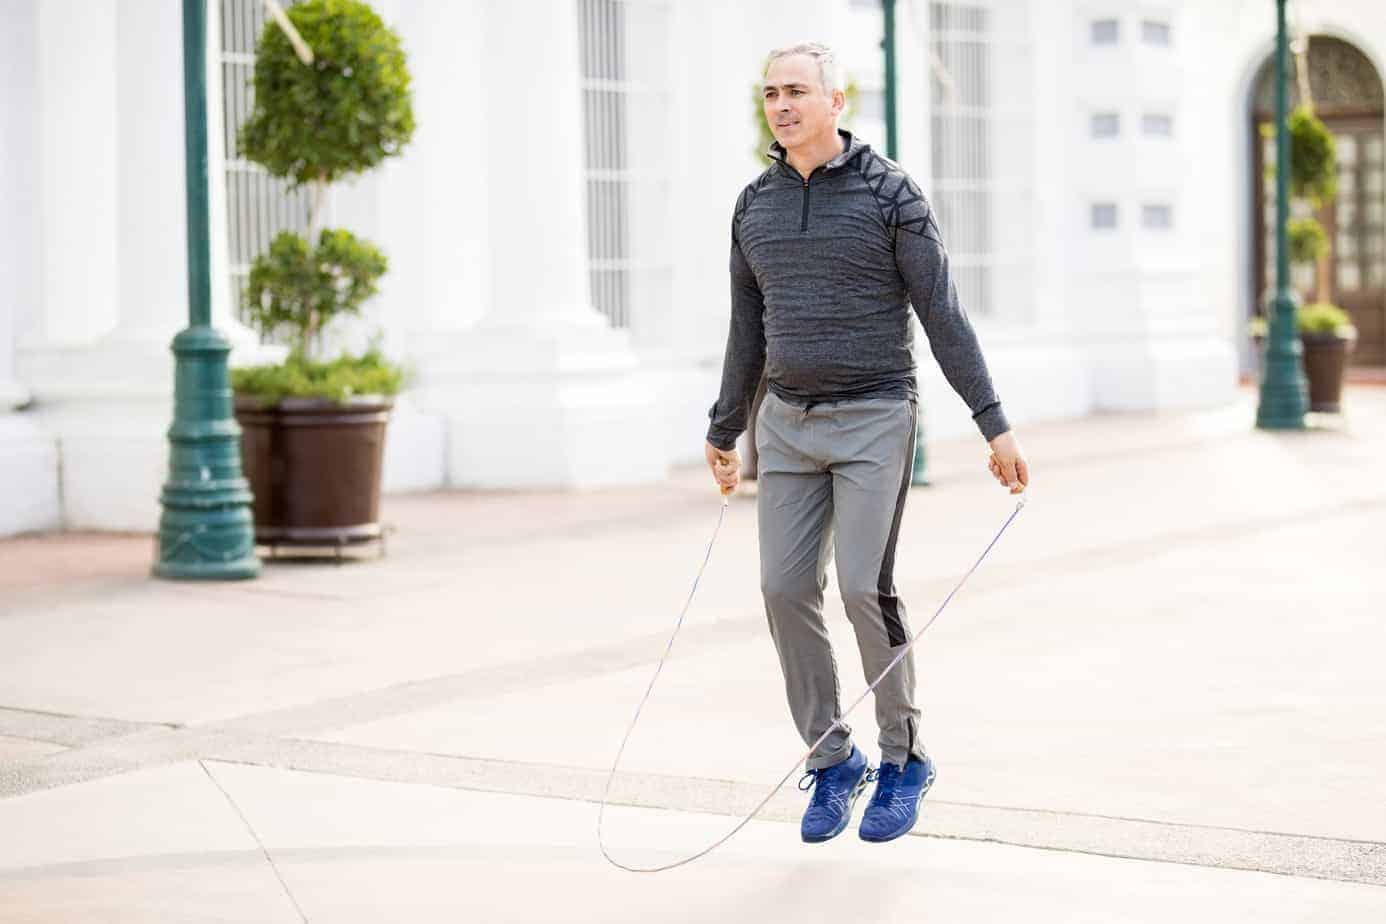 Mature man jumping a rope and exercising outdoors.